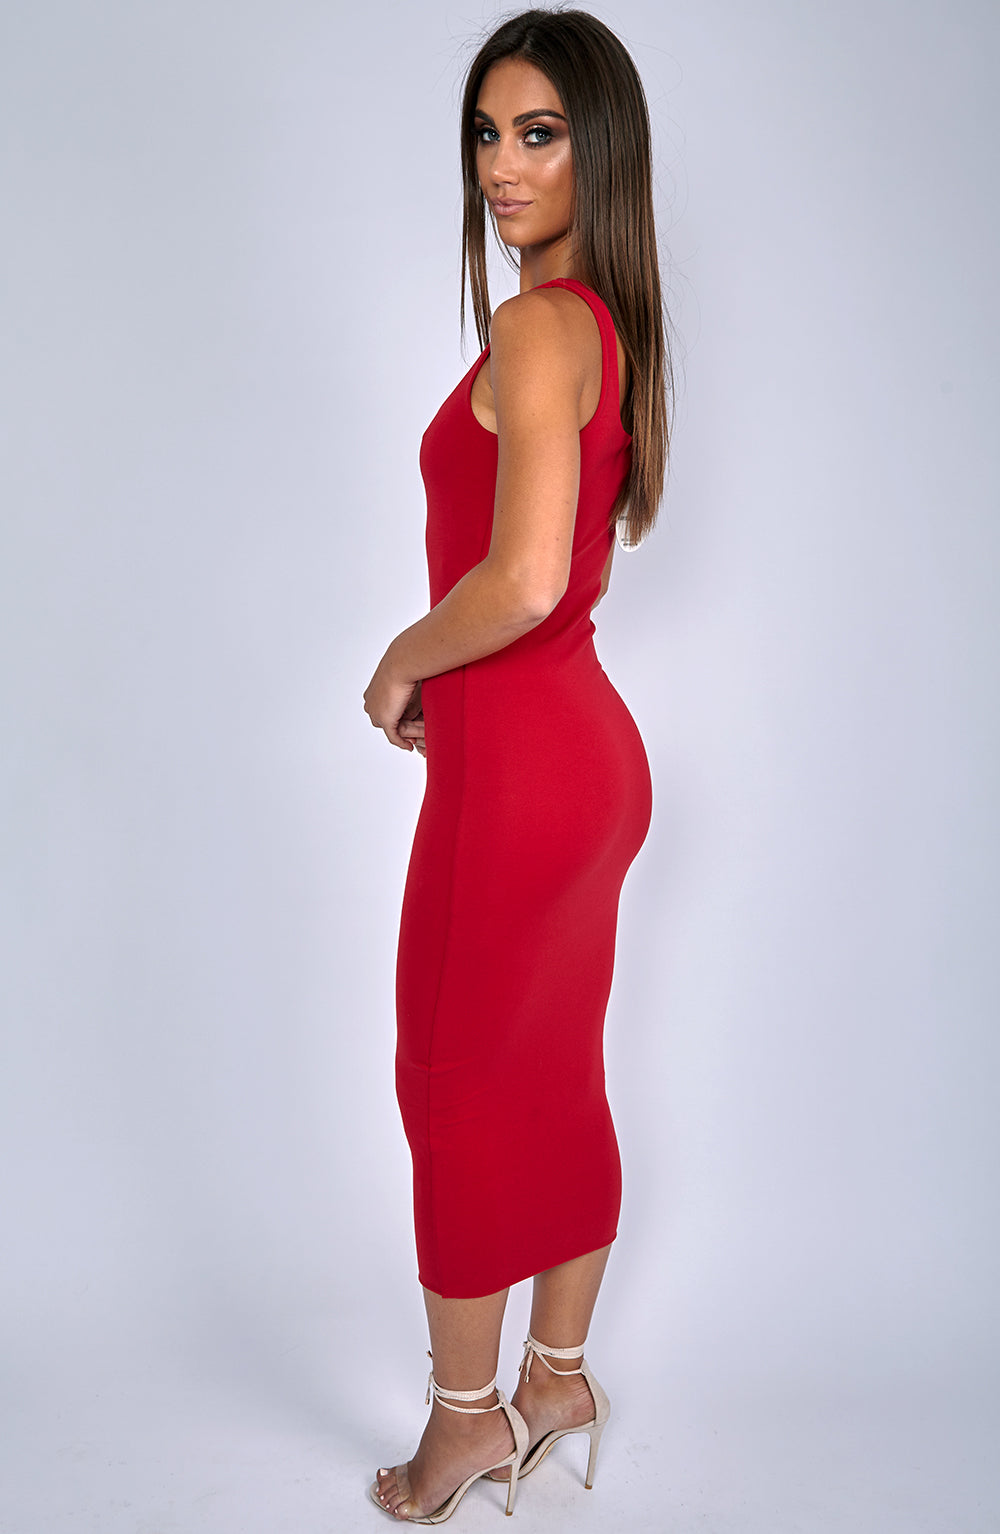 Basic Bish Dress - Red